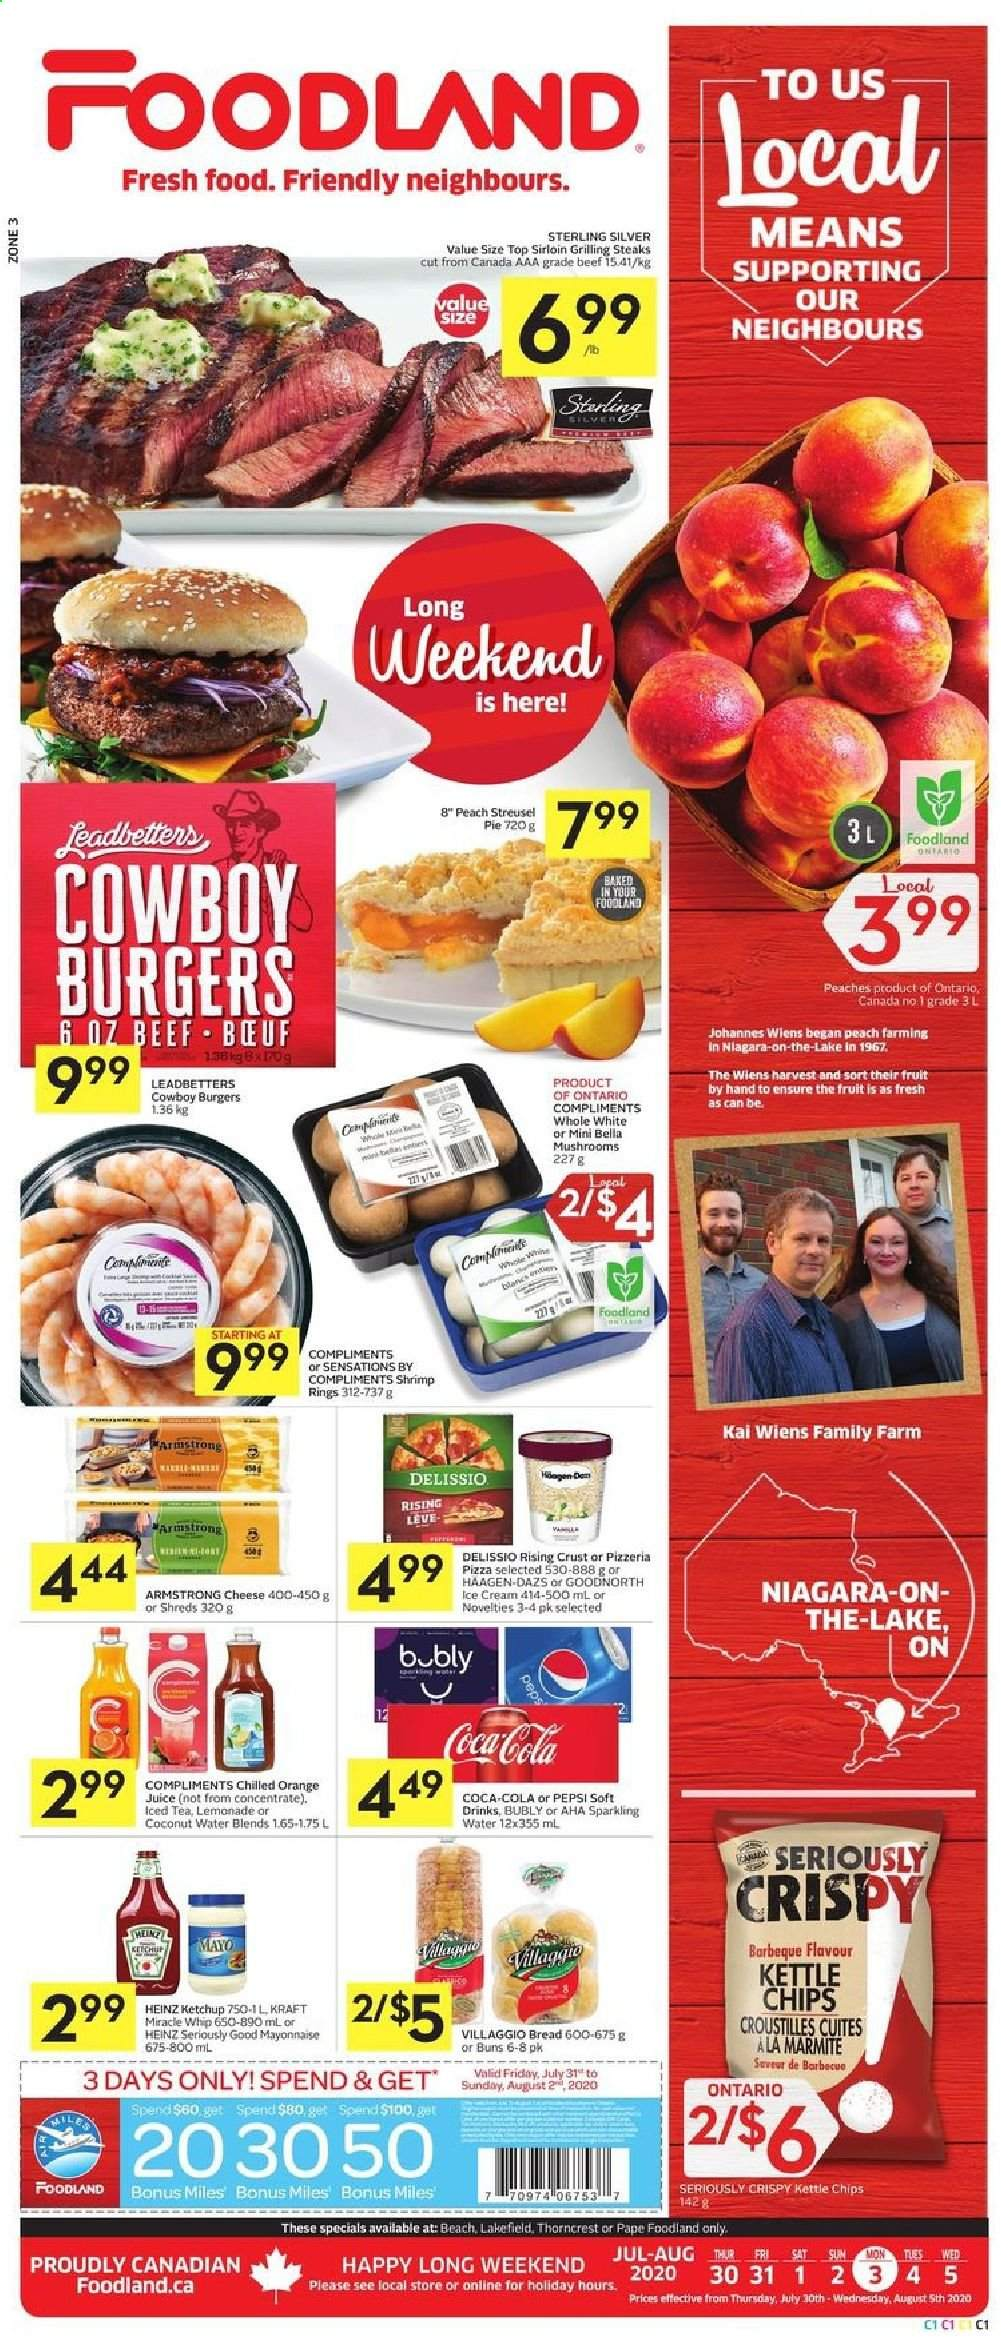 Foodland Flyer - July 30, 2020 - August 05, 2020 - Sales products - beef meat, bella, bread, lemonade, mayonnaise, miracle whip, mushrooms, ring, shrimp, tea, heinz, ice cream, ketchup, pizza, peaches, pepsi, orange juice, chips, cheese, juice, coconut, pie, sparkling water, iced tea, barbecue, orange, fruits, jůl. Page 1.